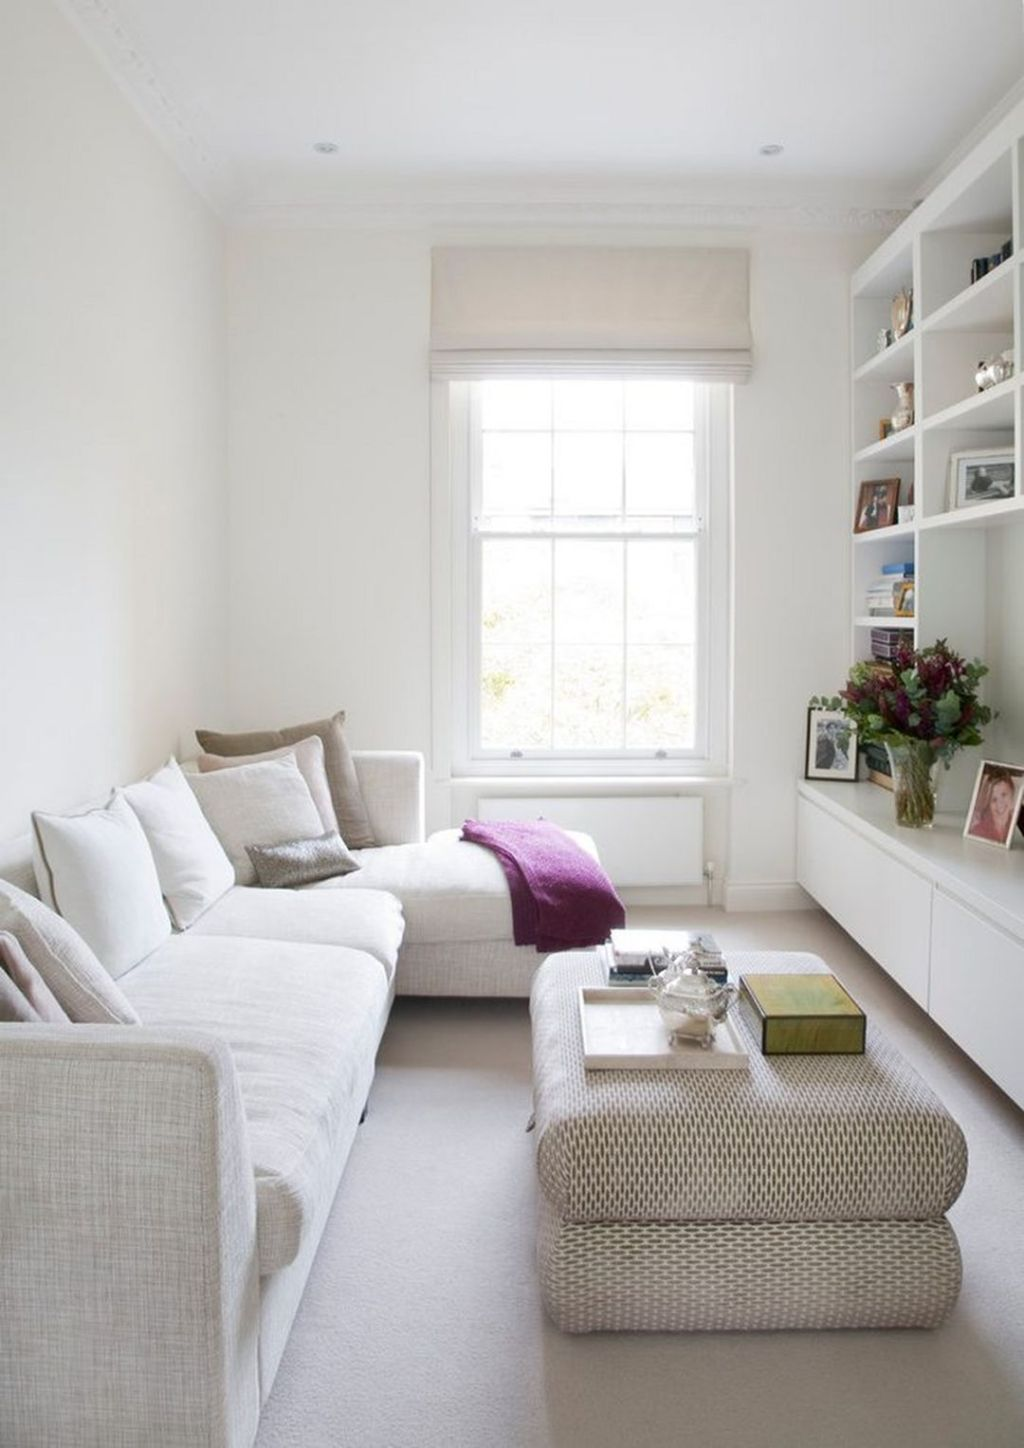 10 Beautiful Living Room Designs For Your Tiny House in ... on Beautiful Small Room  id=29862